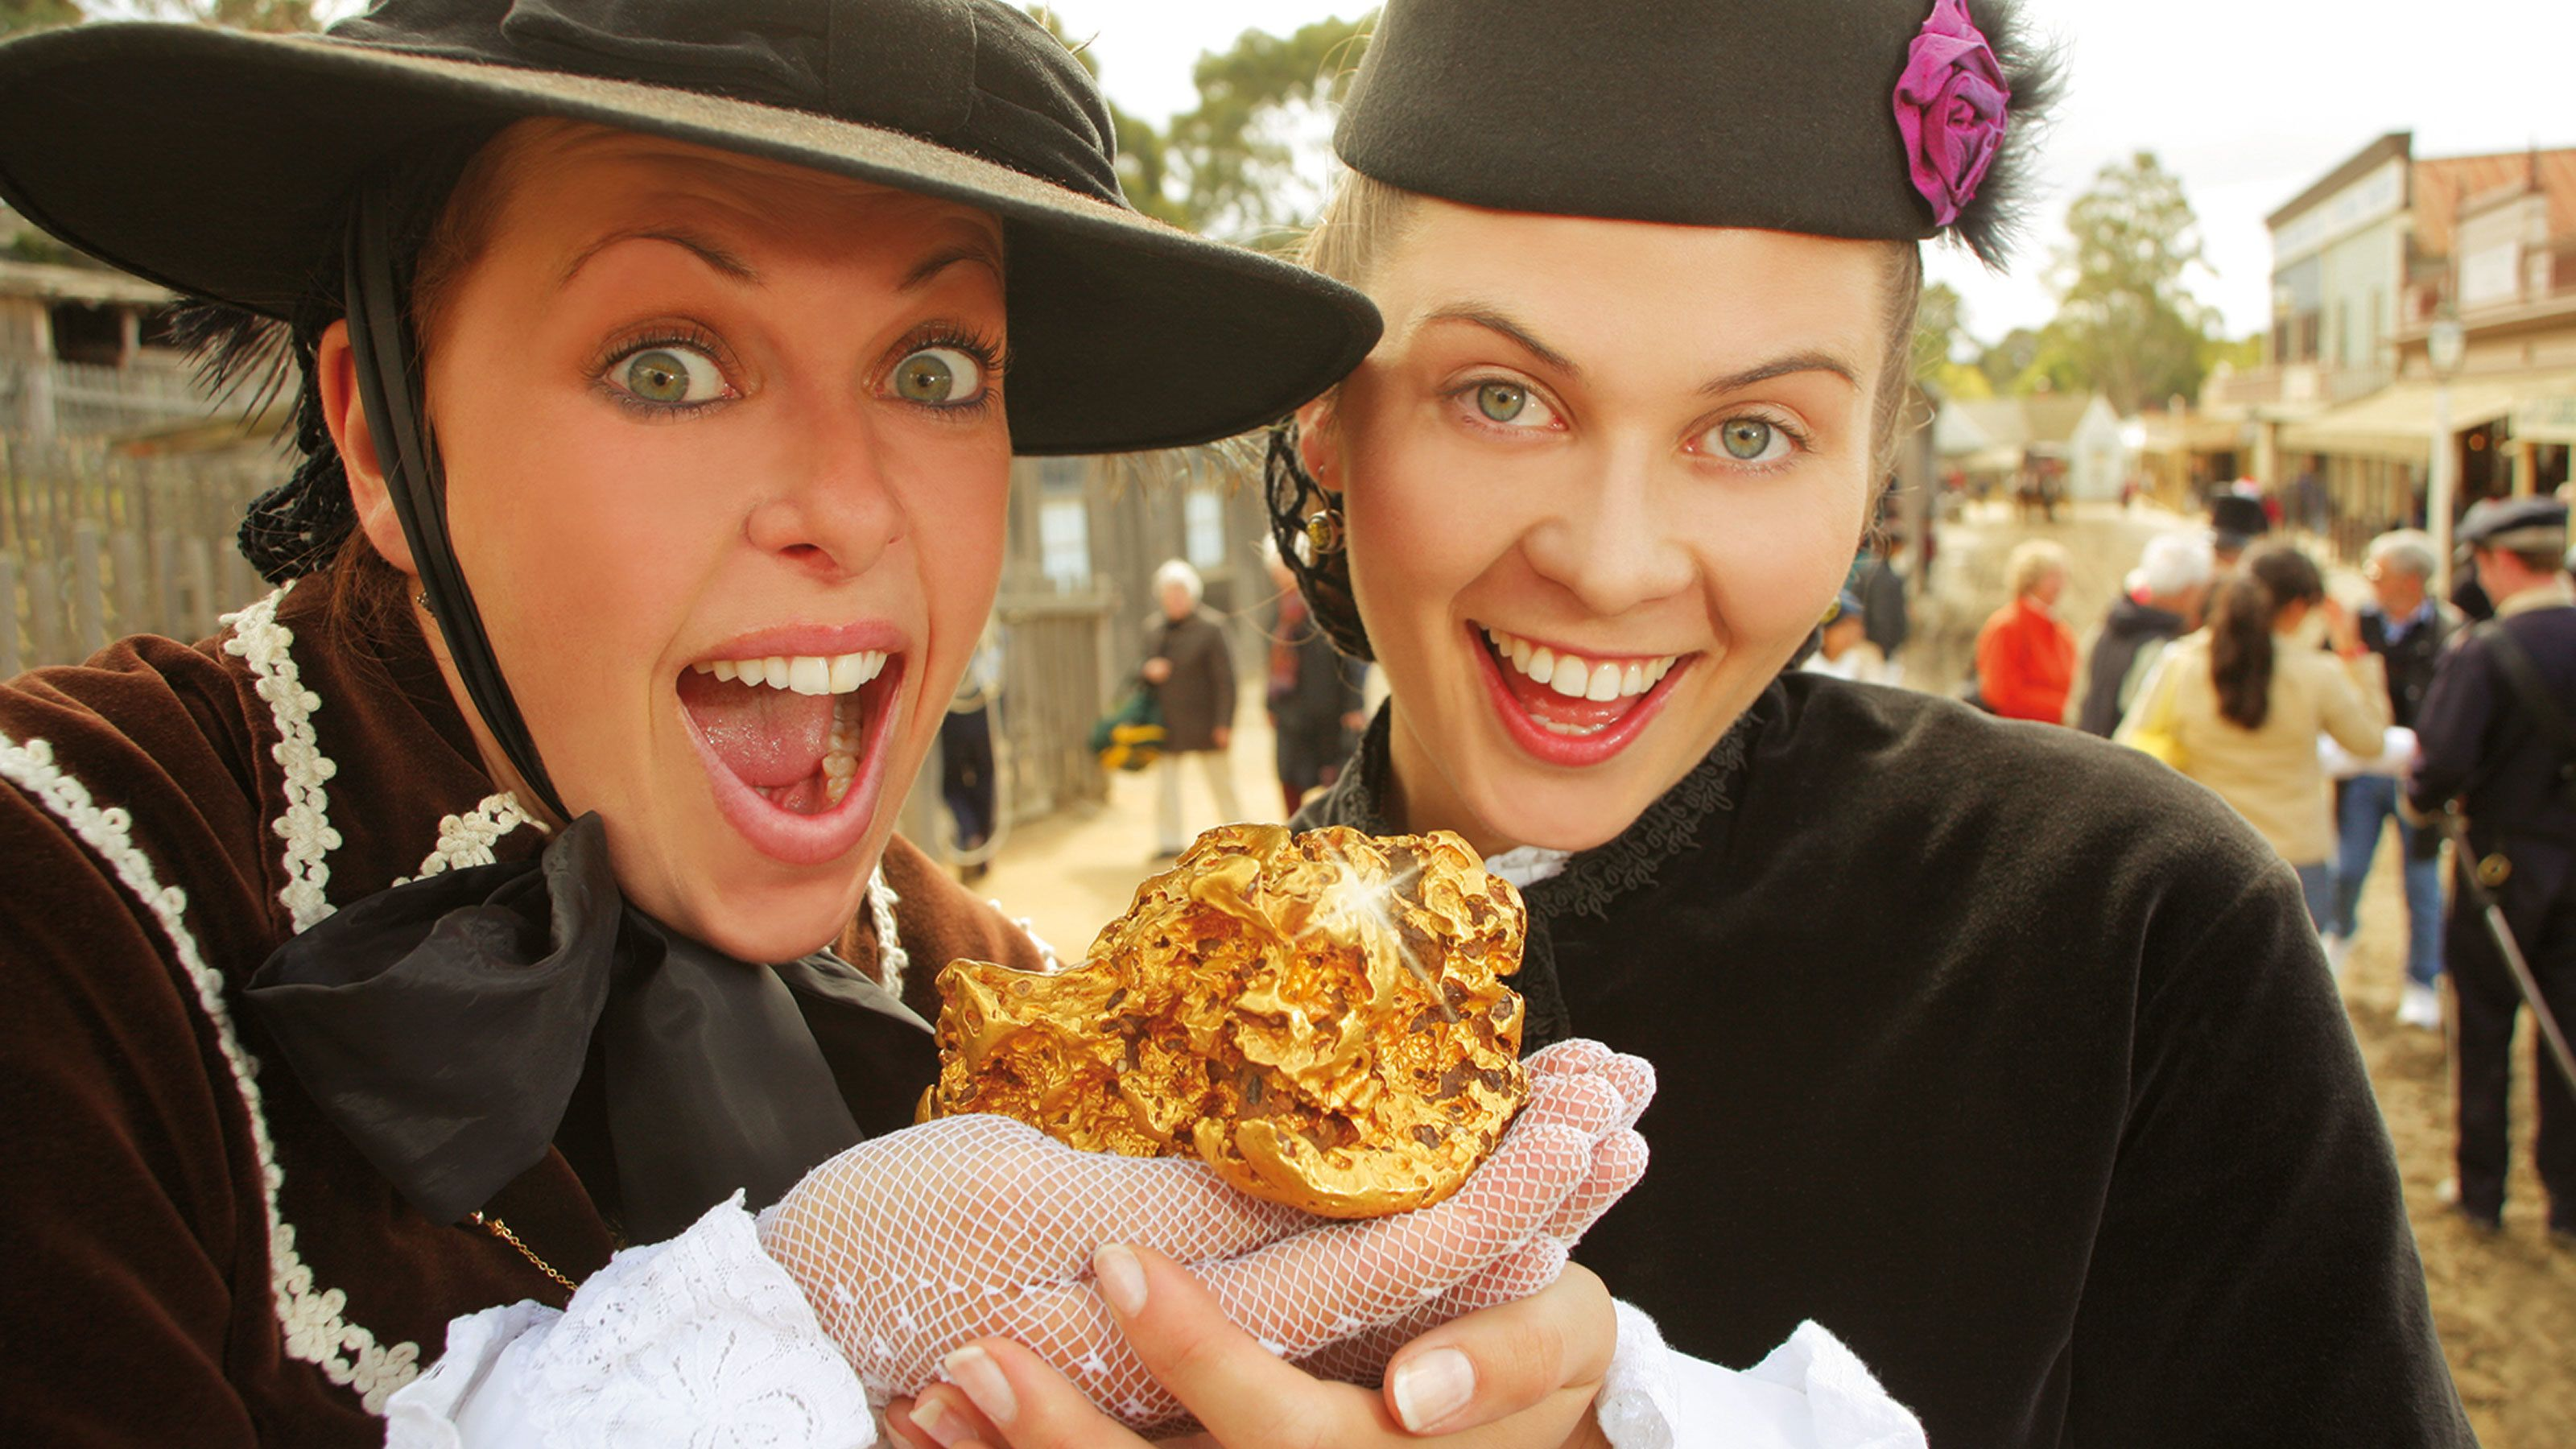 Women in costume holding prop gold at Souvereign Hill in Australia